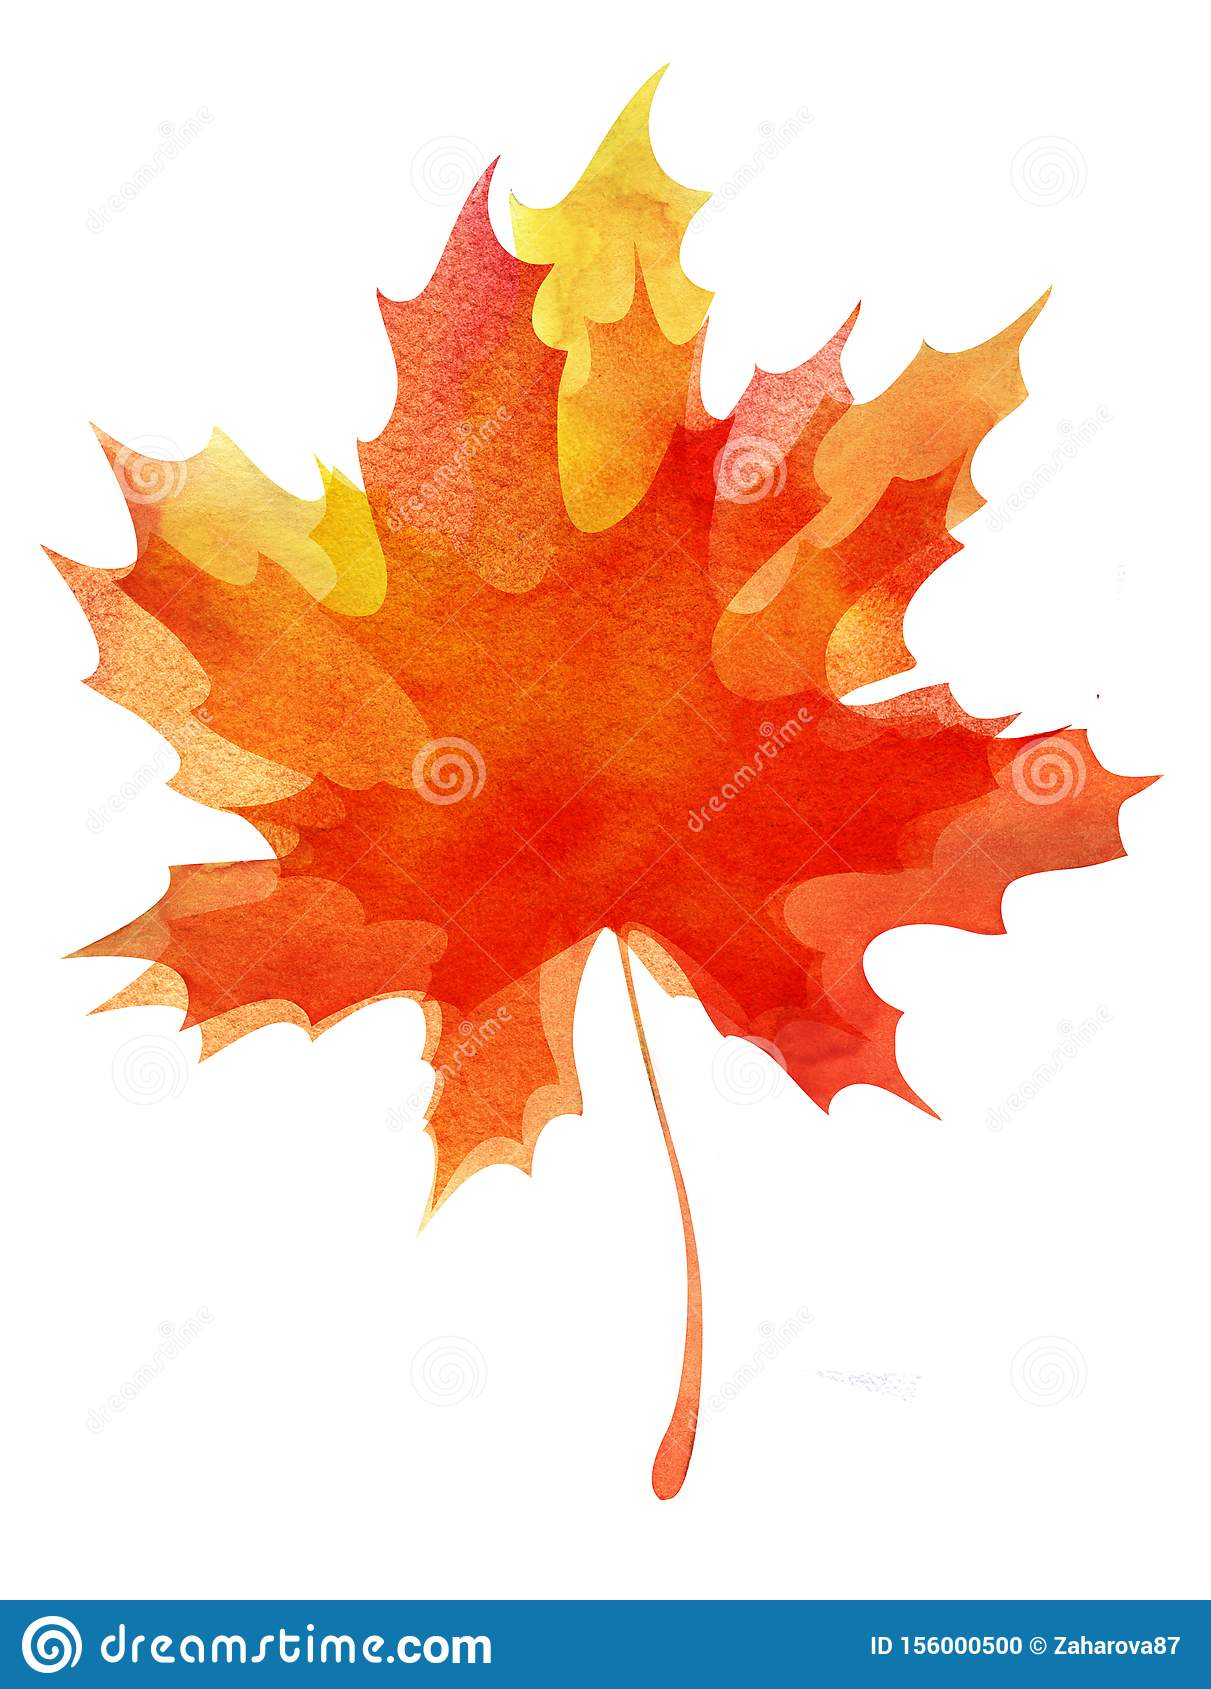 Decorative background. Multilayer autumn maple leaf. Orange-yellow gradient. Abstract watercolor fill. Hand drawn